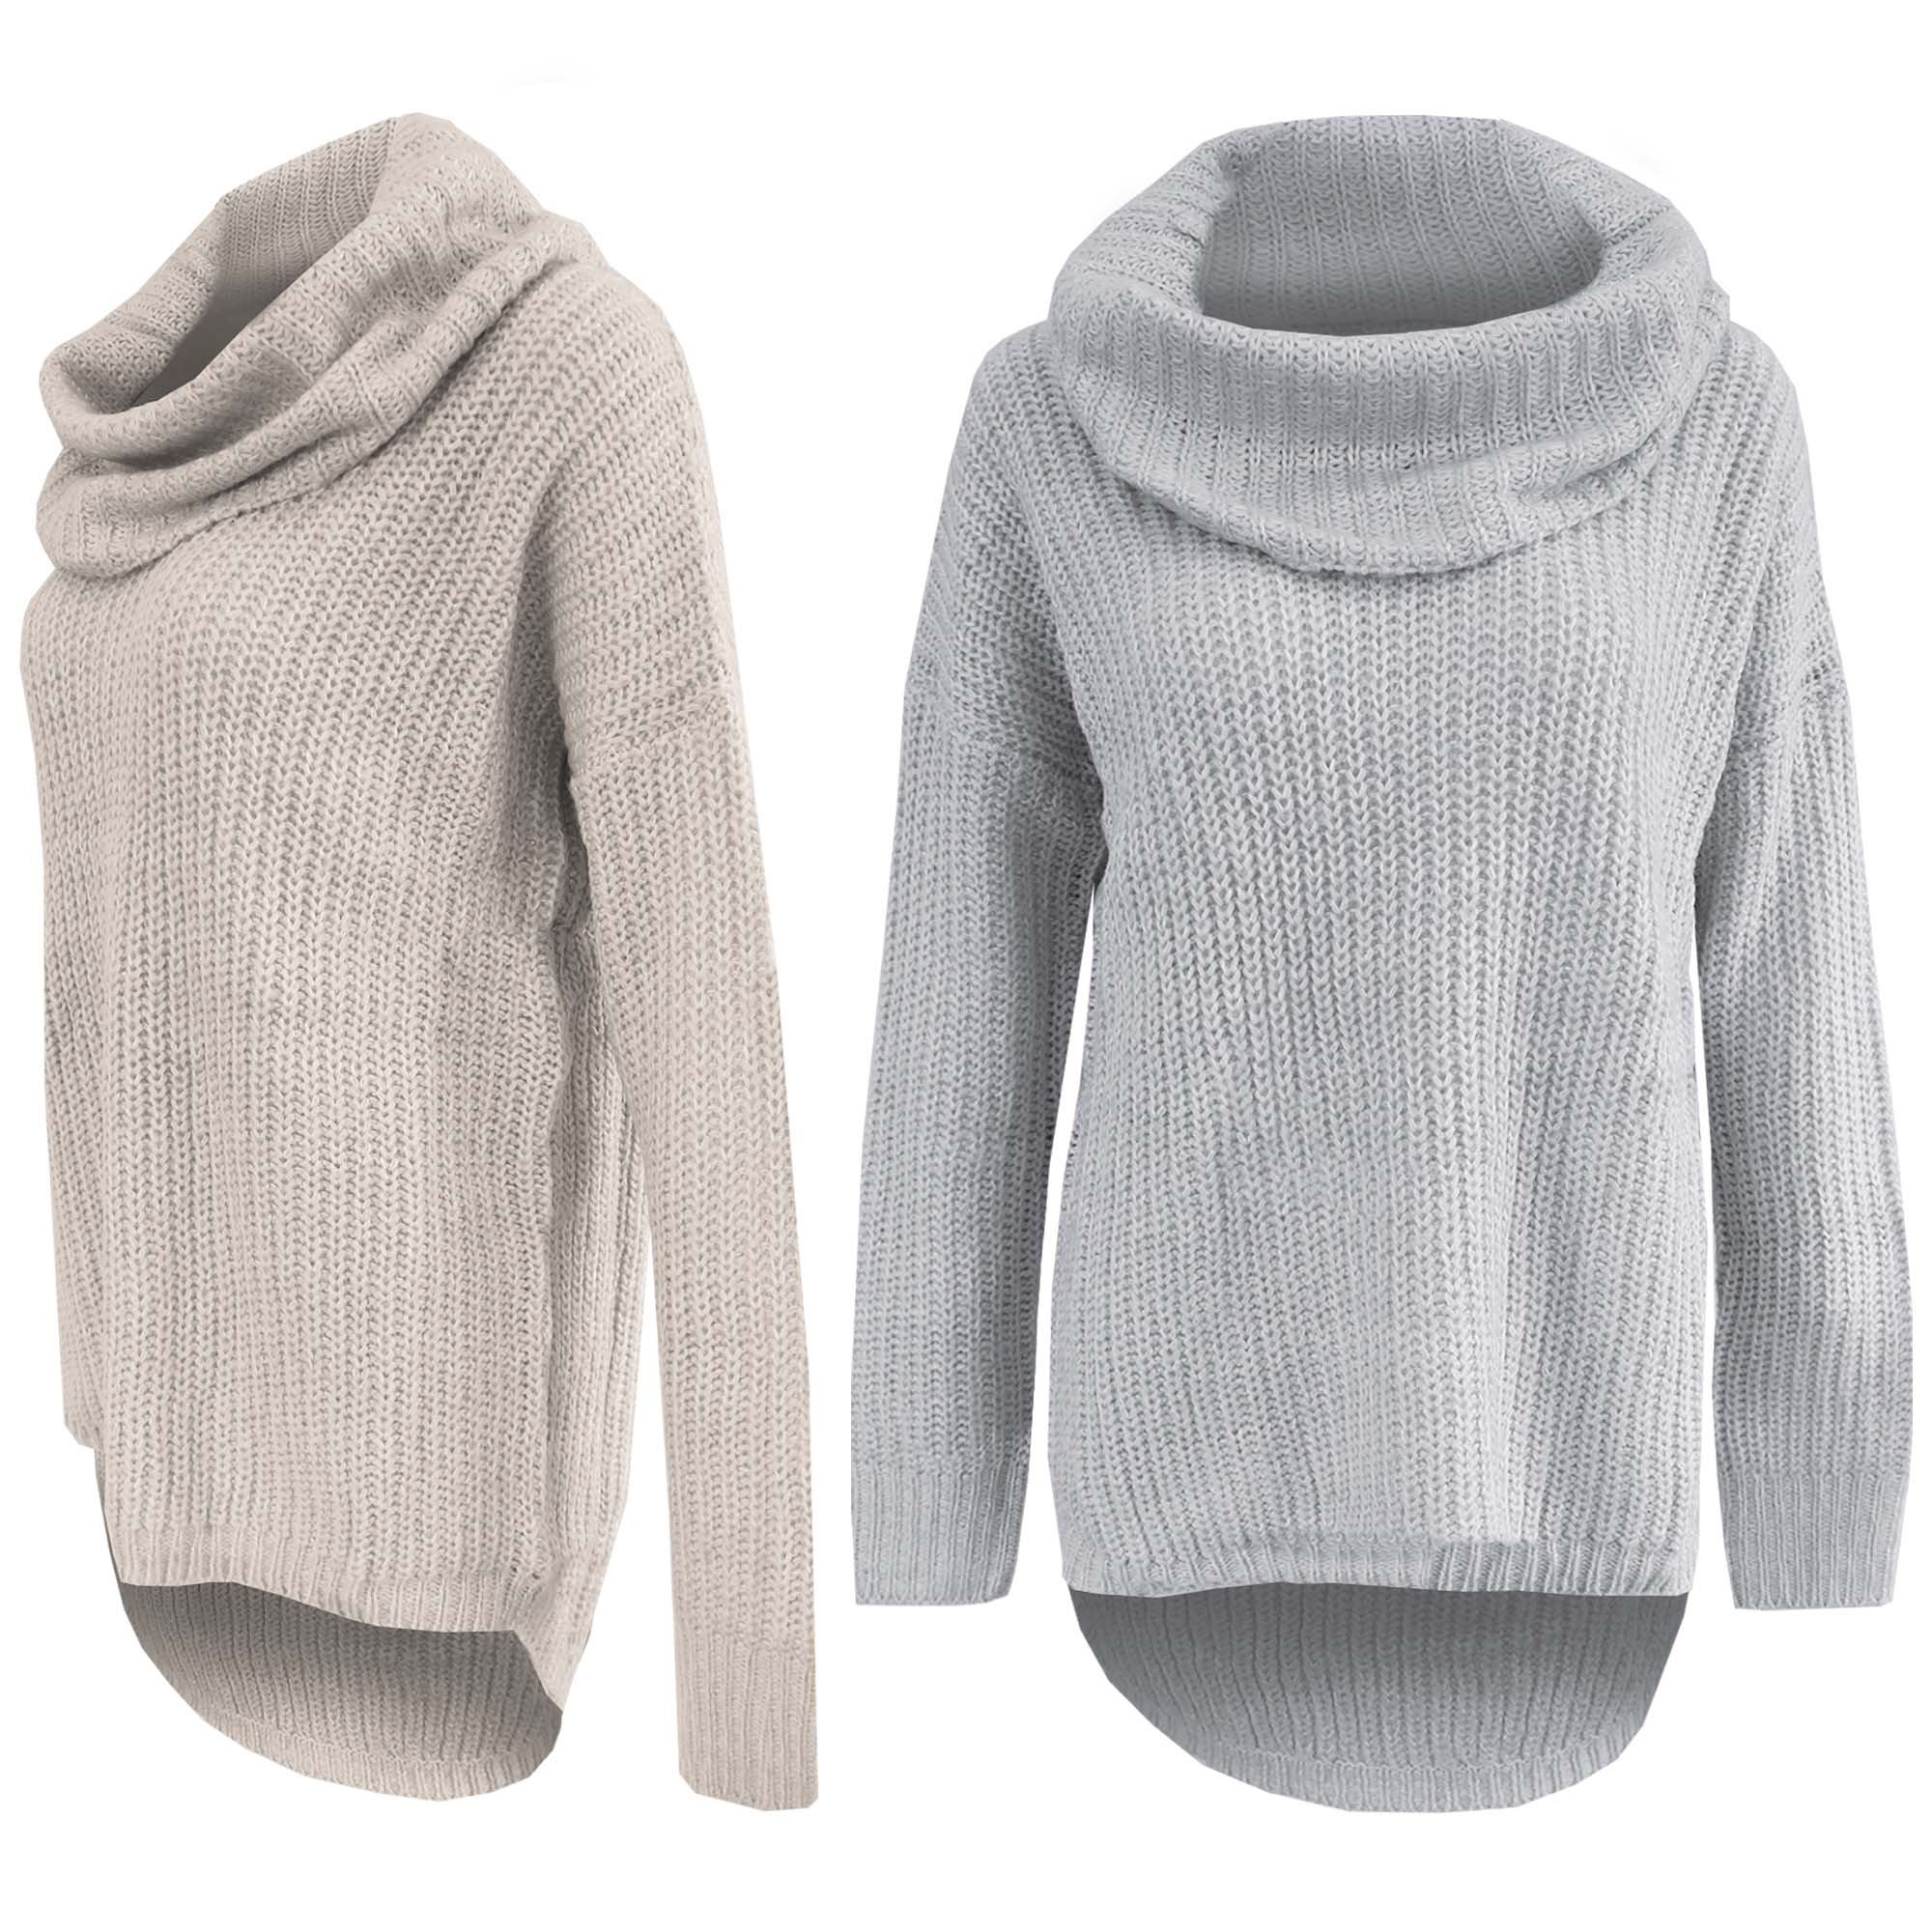 Women's Knitwear Wrap up warm this autumn and winter with gorgeous women's jumpers from Littlewoods. With designs from top fashion brands like Joe Browns, Lost Ink and Oasis, our fab selection of knitwear will keep you feeling cosy when the temperature starts to drop.